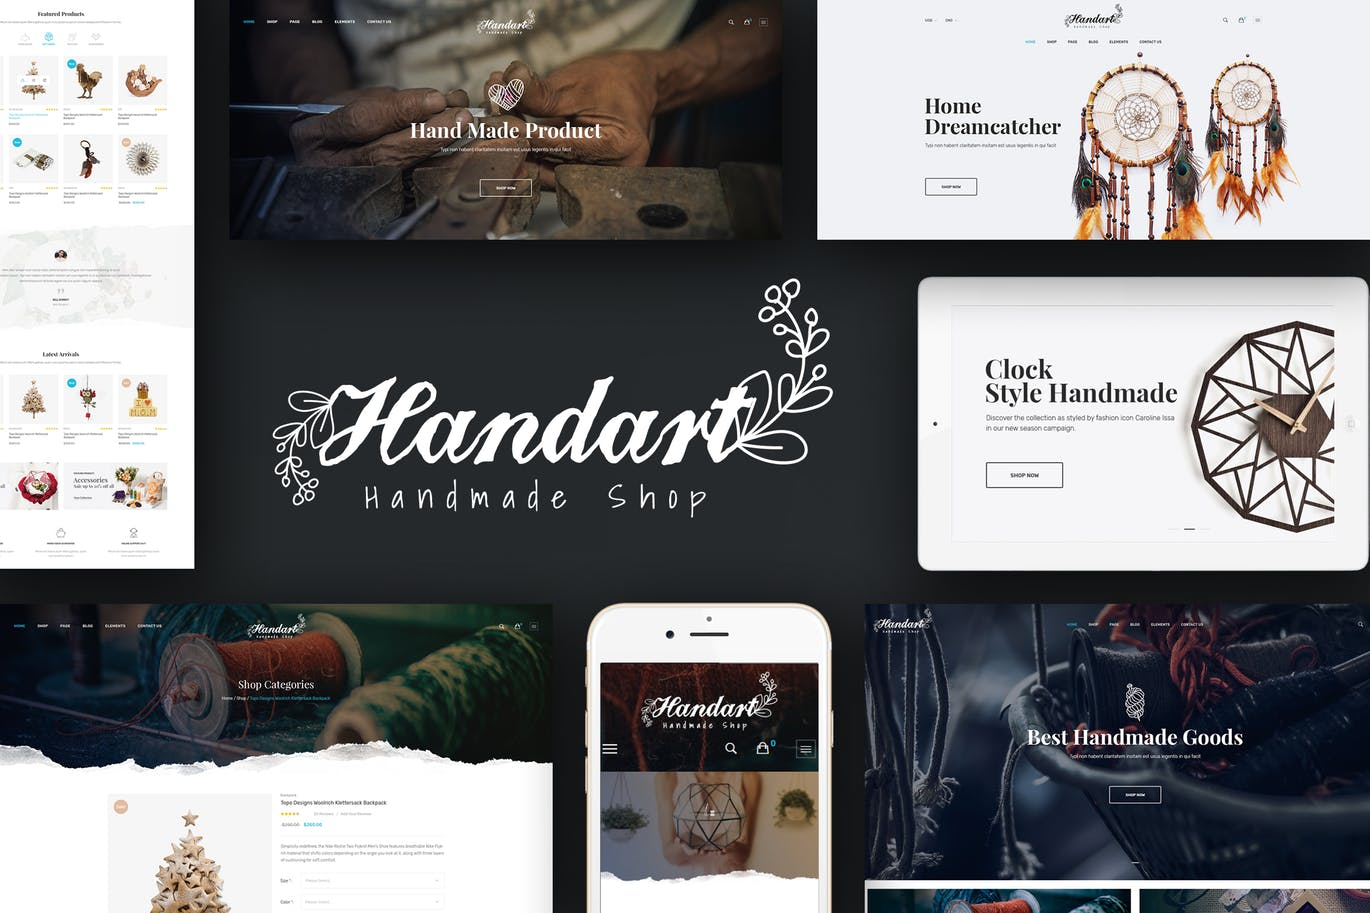 Handart Magento 2 theme offers you an online store to sell handmade products and other goods with innovative design and powerful features. Handart theme is responsive, retina ready and coming with +4 homepage layout styles that adapt to all your requirements. Cms blocks and banners come along with the theme, making it much easier to visualize your content and even insert ads on your page. If you plan on having a large collection of crafty products in your online store, Megamenu helps organize them. The Custom Slider homepage combines wonderfully with the other extensions, and the full-screen photo homepage is highlight of the theme. Show nice thumbnail image for each category with Tabs Category Slider. CSS3 animation effects and Bootstrap 3 work to make your advantage with nice effects. Manufacturer is shown in each product. Upload images when hover on a product and customers can see Add To Cart, Add To Compare, Add To Wishlist buttons. Handart is really a responsive magento theme suitable for you! Features & Extensions Responsive and retina ready 4 Different Layouts Flexible layout format comes with various styles. Mega Menu support Setup rows and columns Display static blocks contain texts below menu items Translation Blog module included AJAX Layered Navigation Clean, modern design can be used for any type of website Grid / List view Allow to display your items in either list or grid view Set Layout for each page Easy define column left or column right for each page in admin panel. Custom Banner Slider Tabs Category Slider Featured Category Featured Products Slider New Products Slider Bestseller Products Slider Mostviewed Products Slider Onsale Products Slider Random Products Slider Related Products Slider Upsell Products Slider Testimonials PSD included